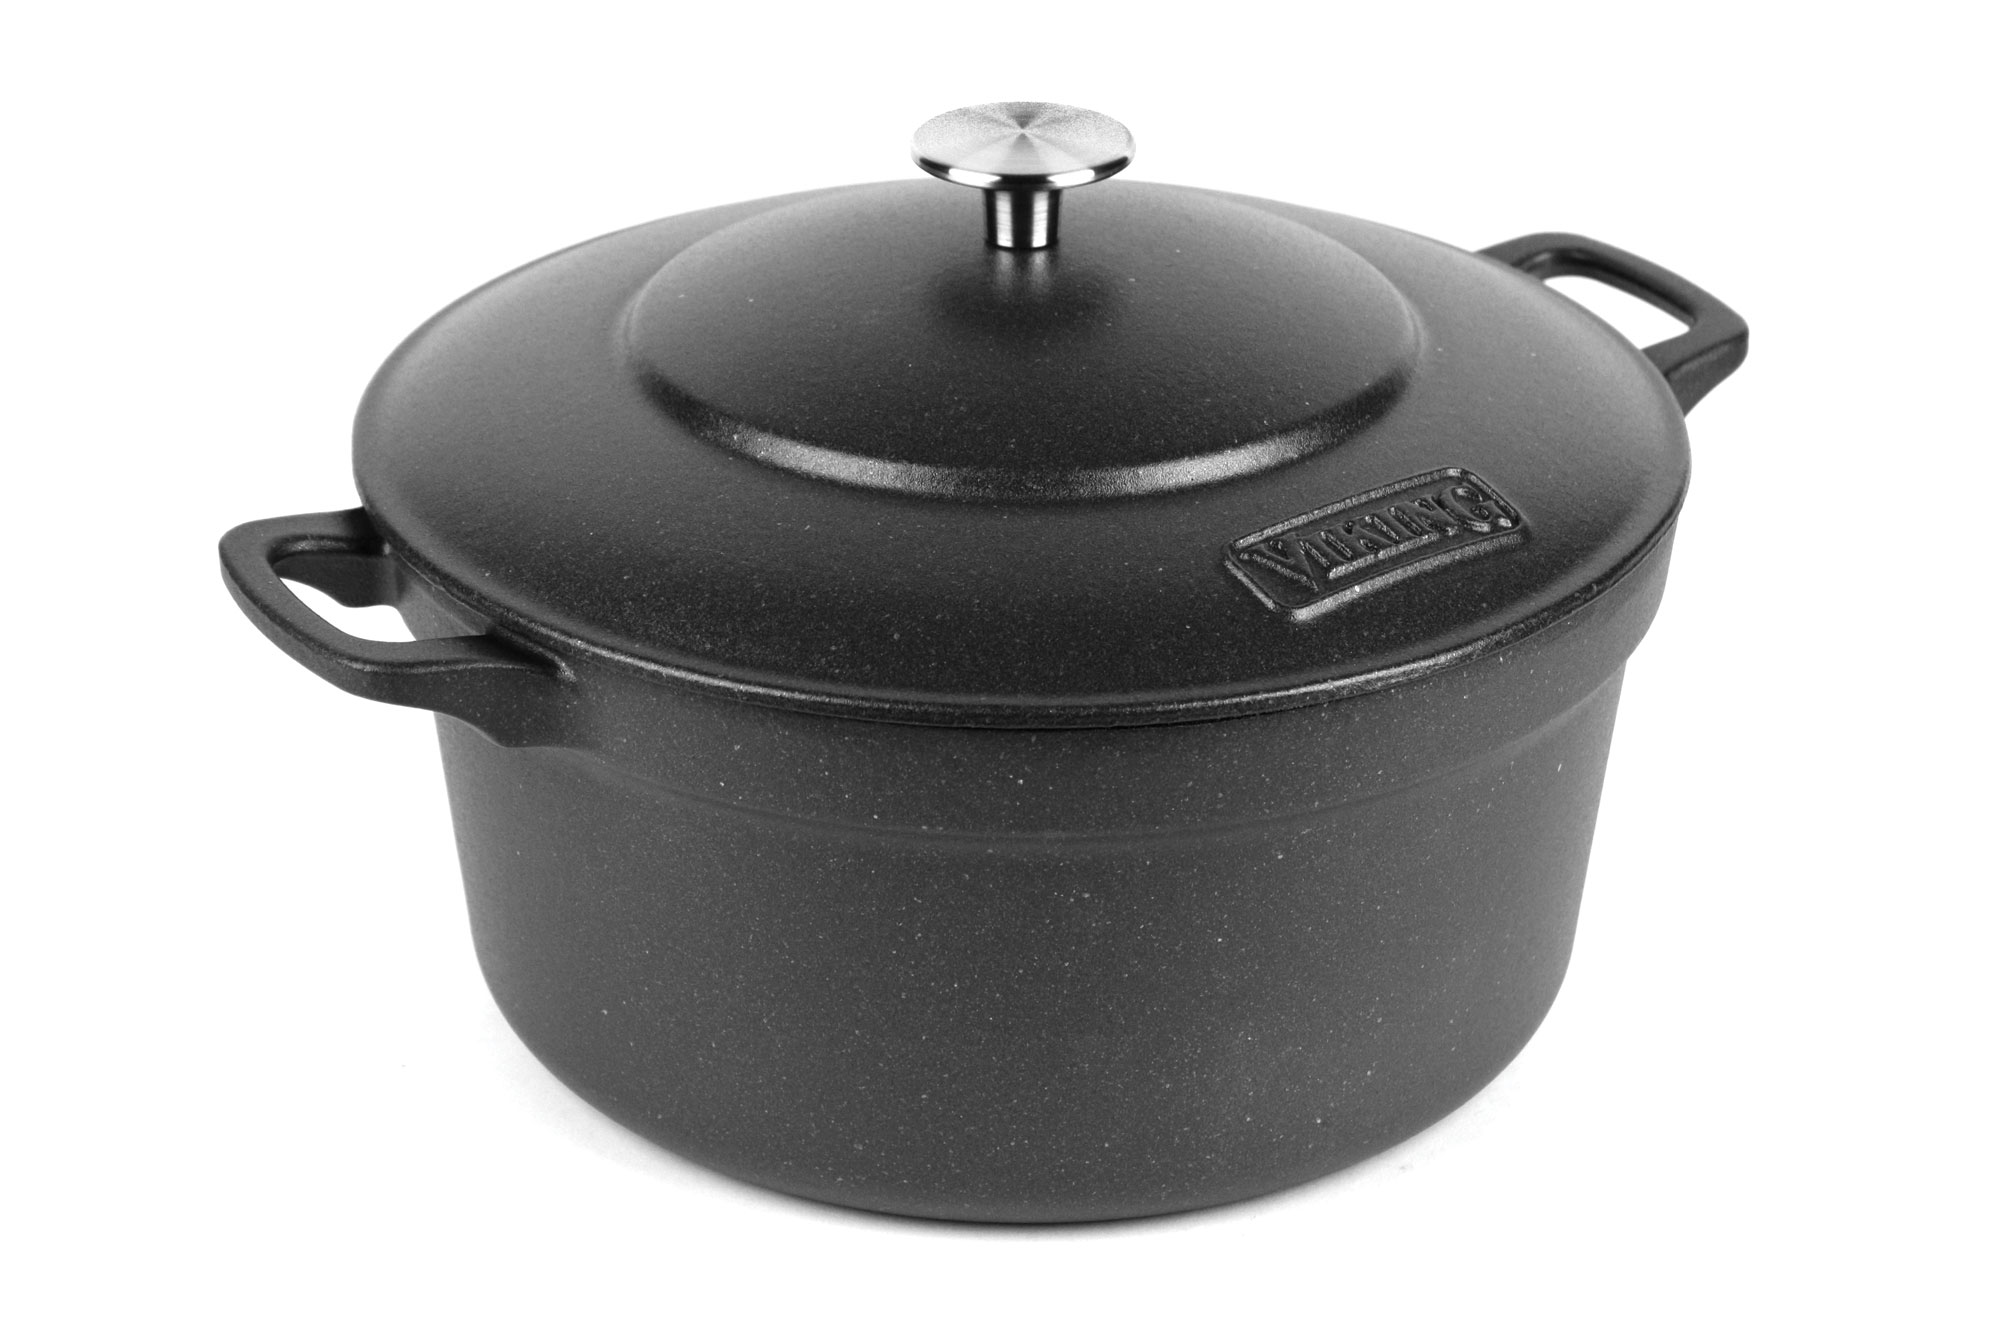 Viking Cast Iron Dutch Oven 7 Quart Cutlery And More